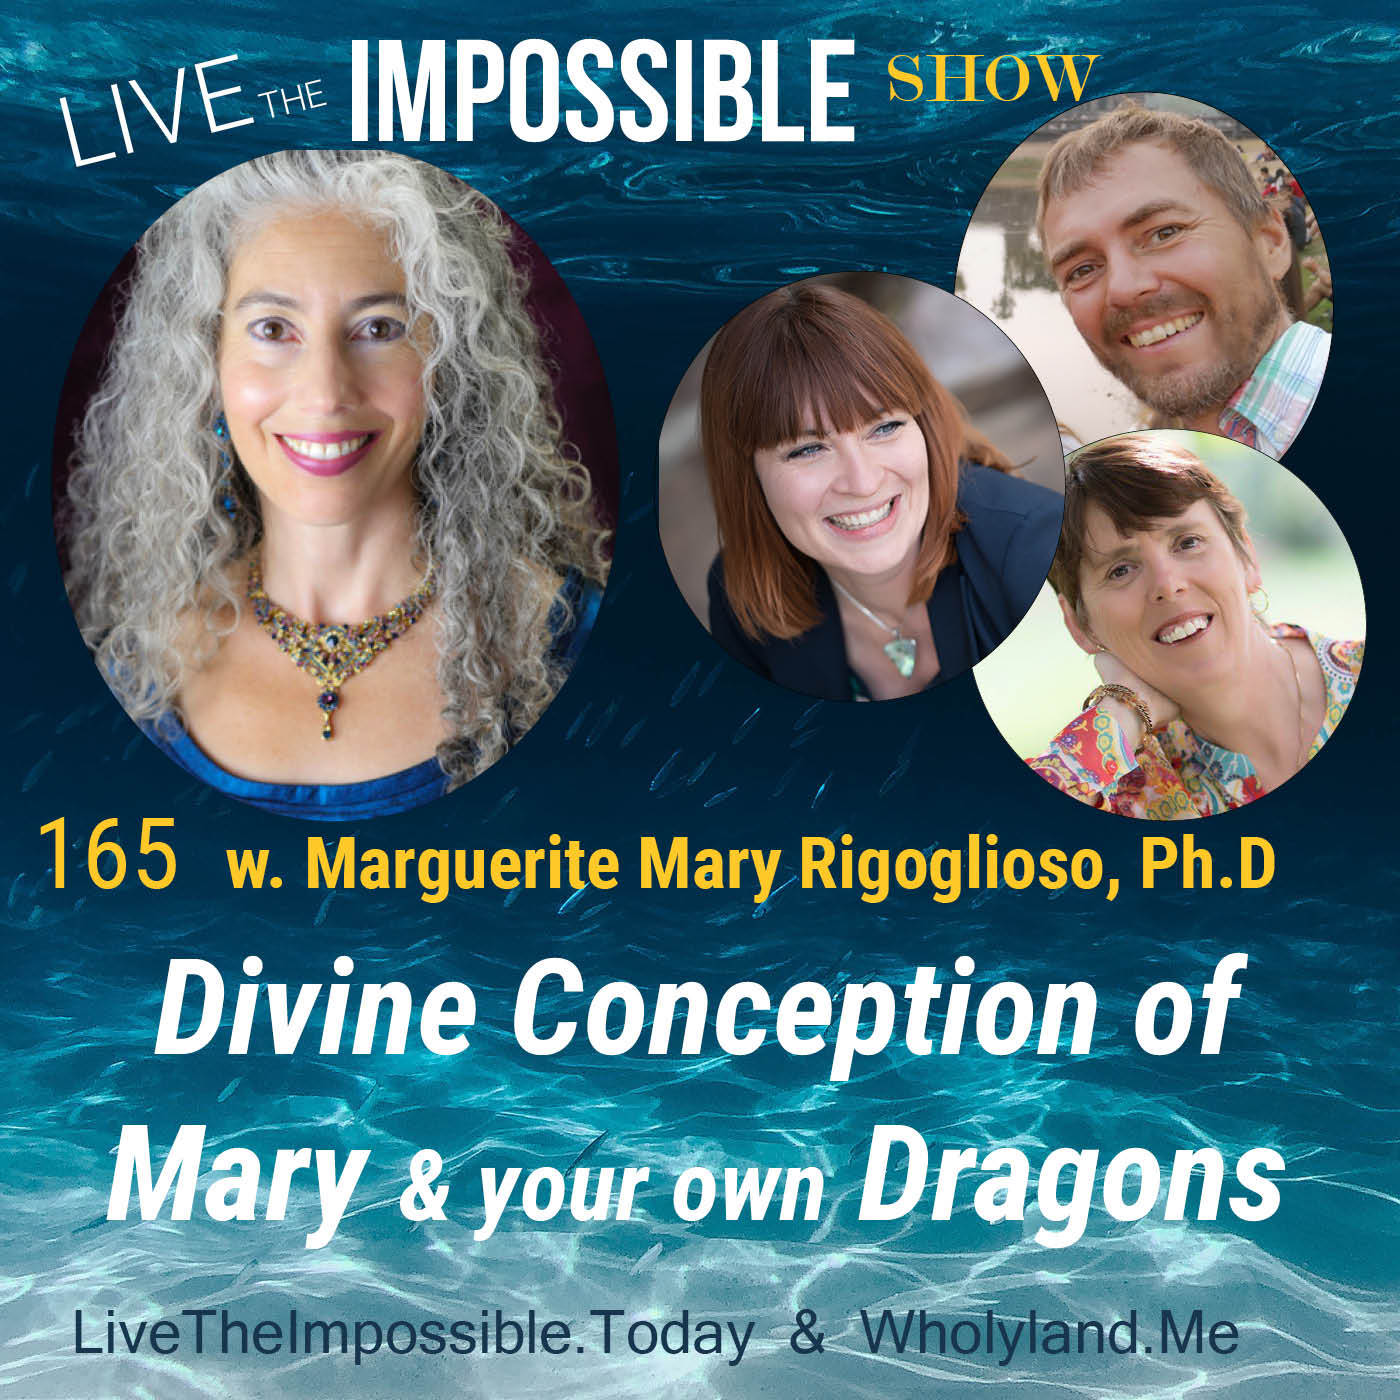 Divine Conception of Mary and your own Dragons w. Marguerite Mary Rigoglioso Ph.D